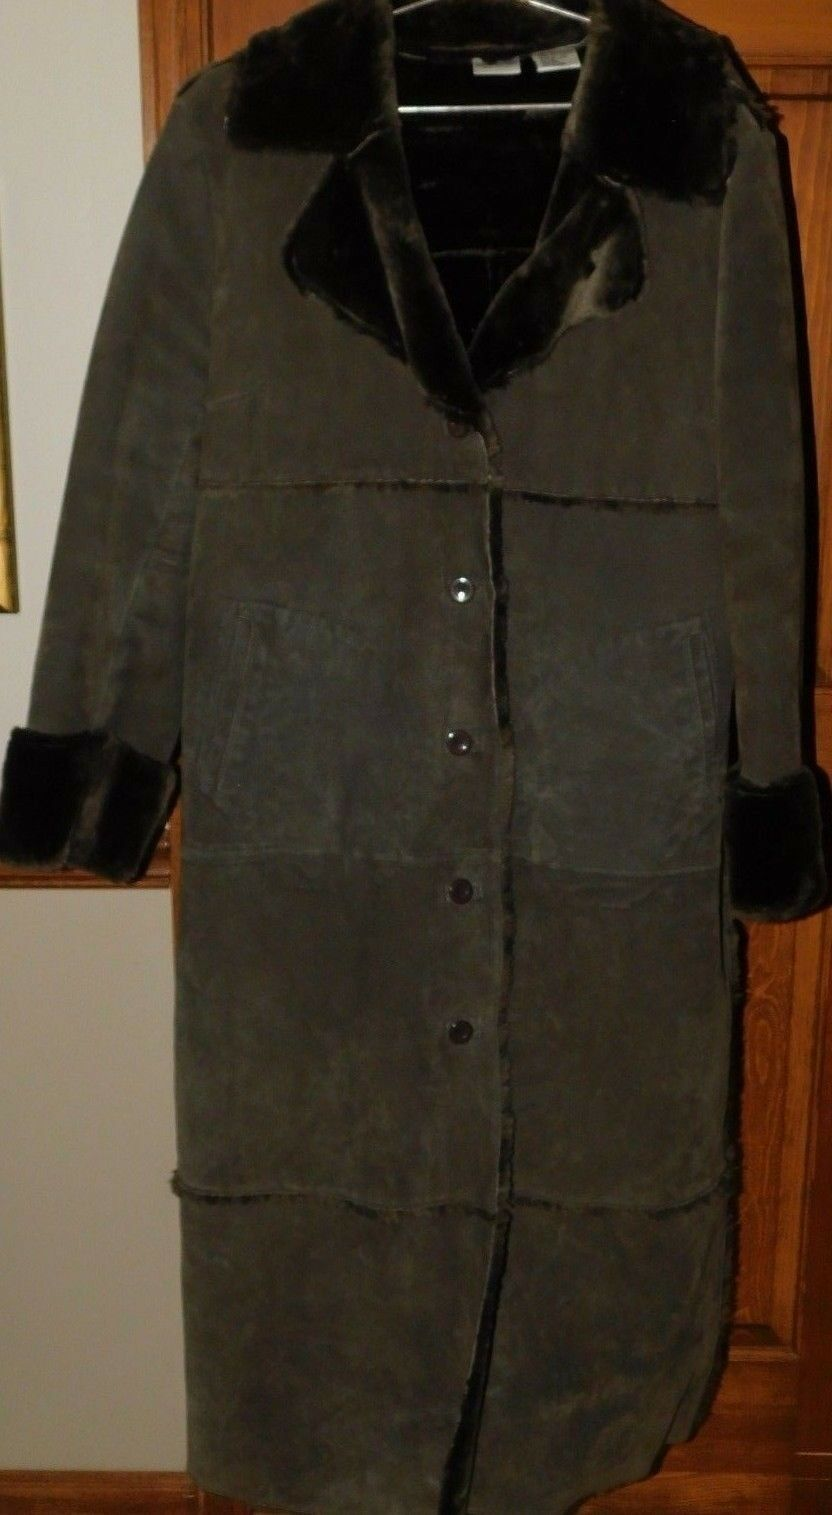 Newport News Easy Style Patchwork Leather Duster Trench Coat Faux Fur Lined 1x